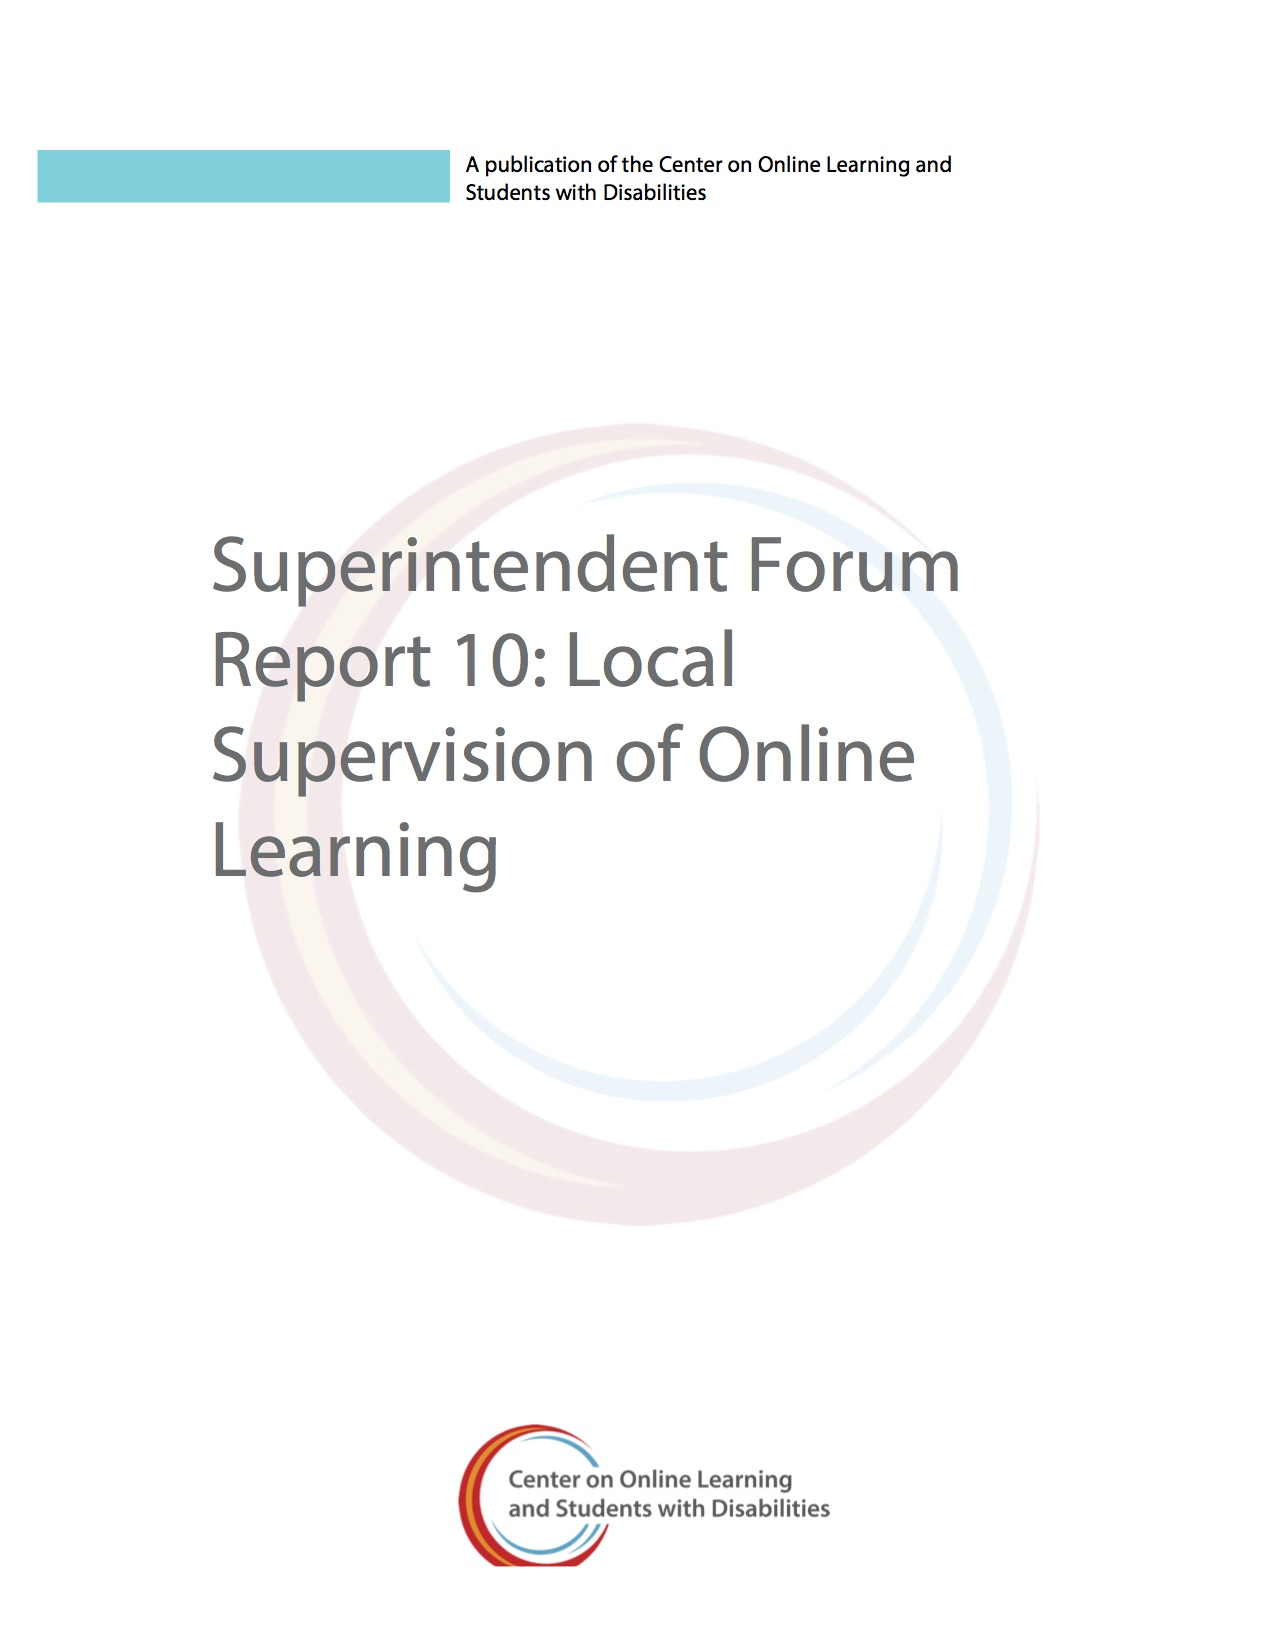 Superintendent Forum Report 10: Local Supervision Of Online Learning